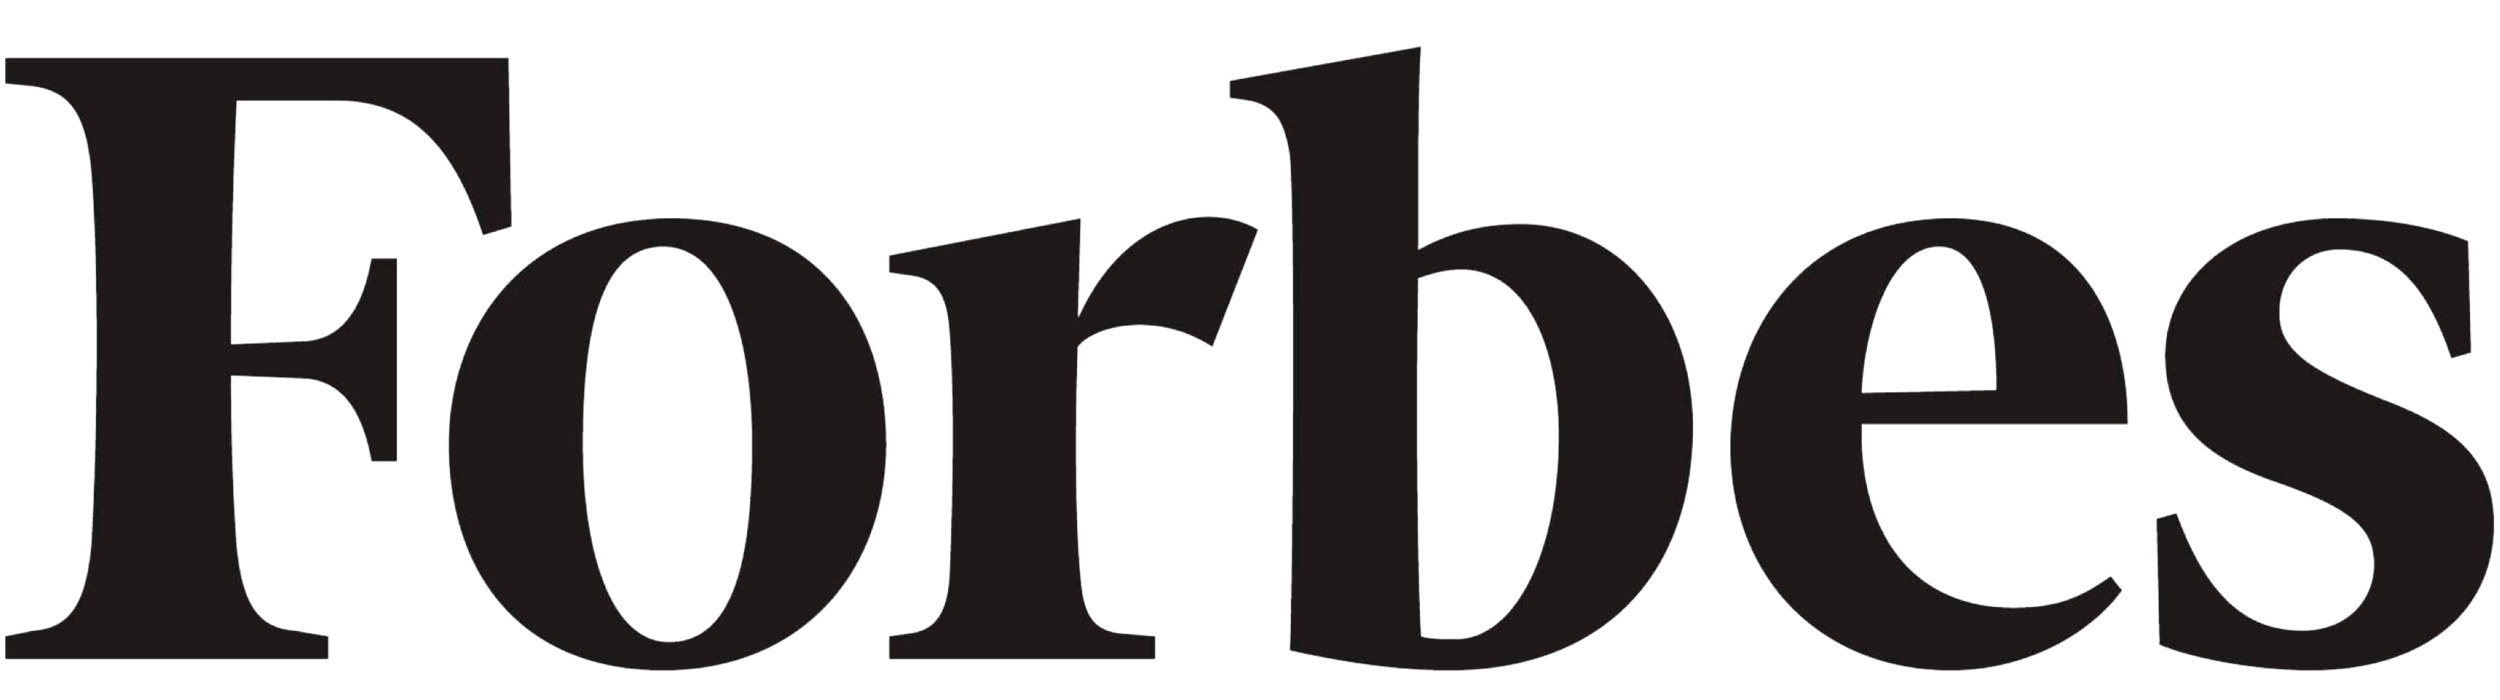 Forbes-Black-Logo-PNG-03003-e1479822757321.png